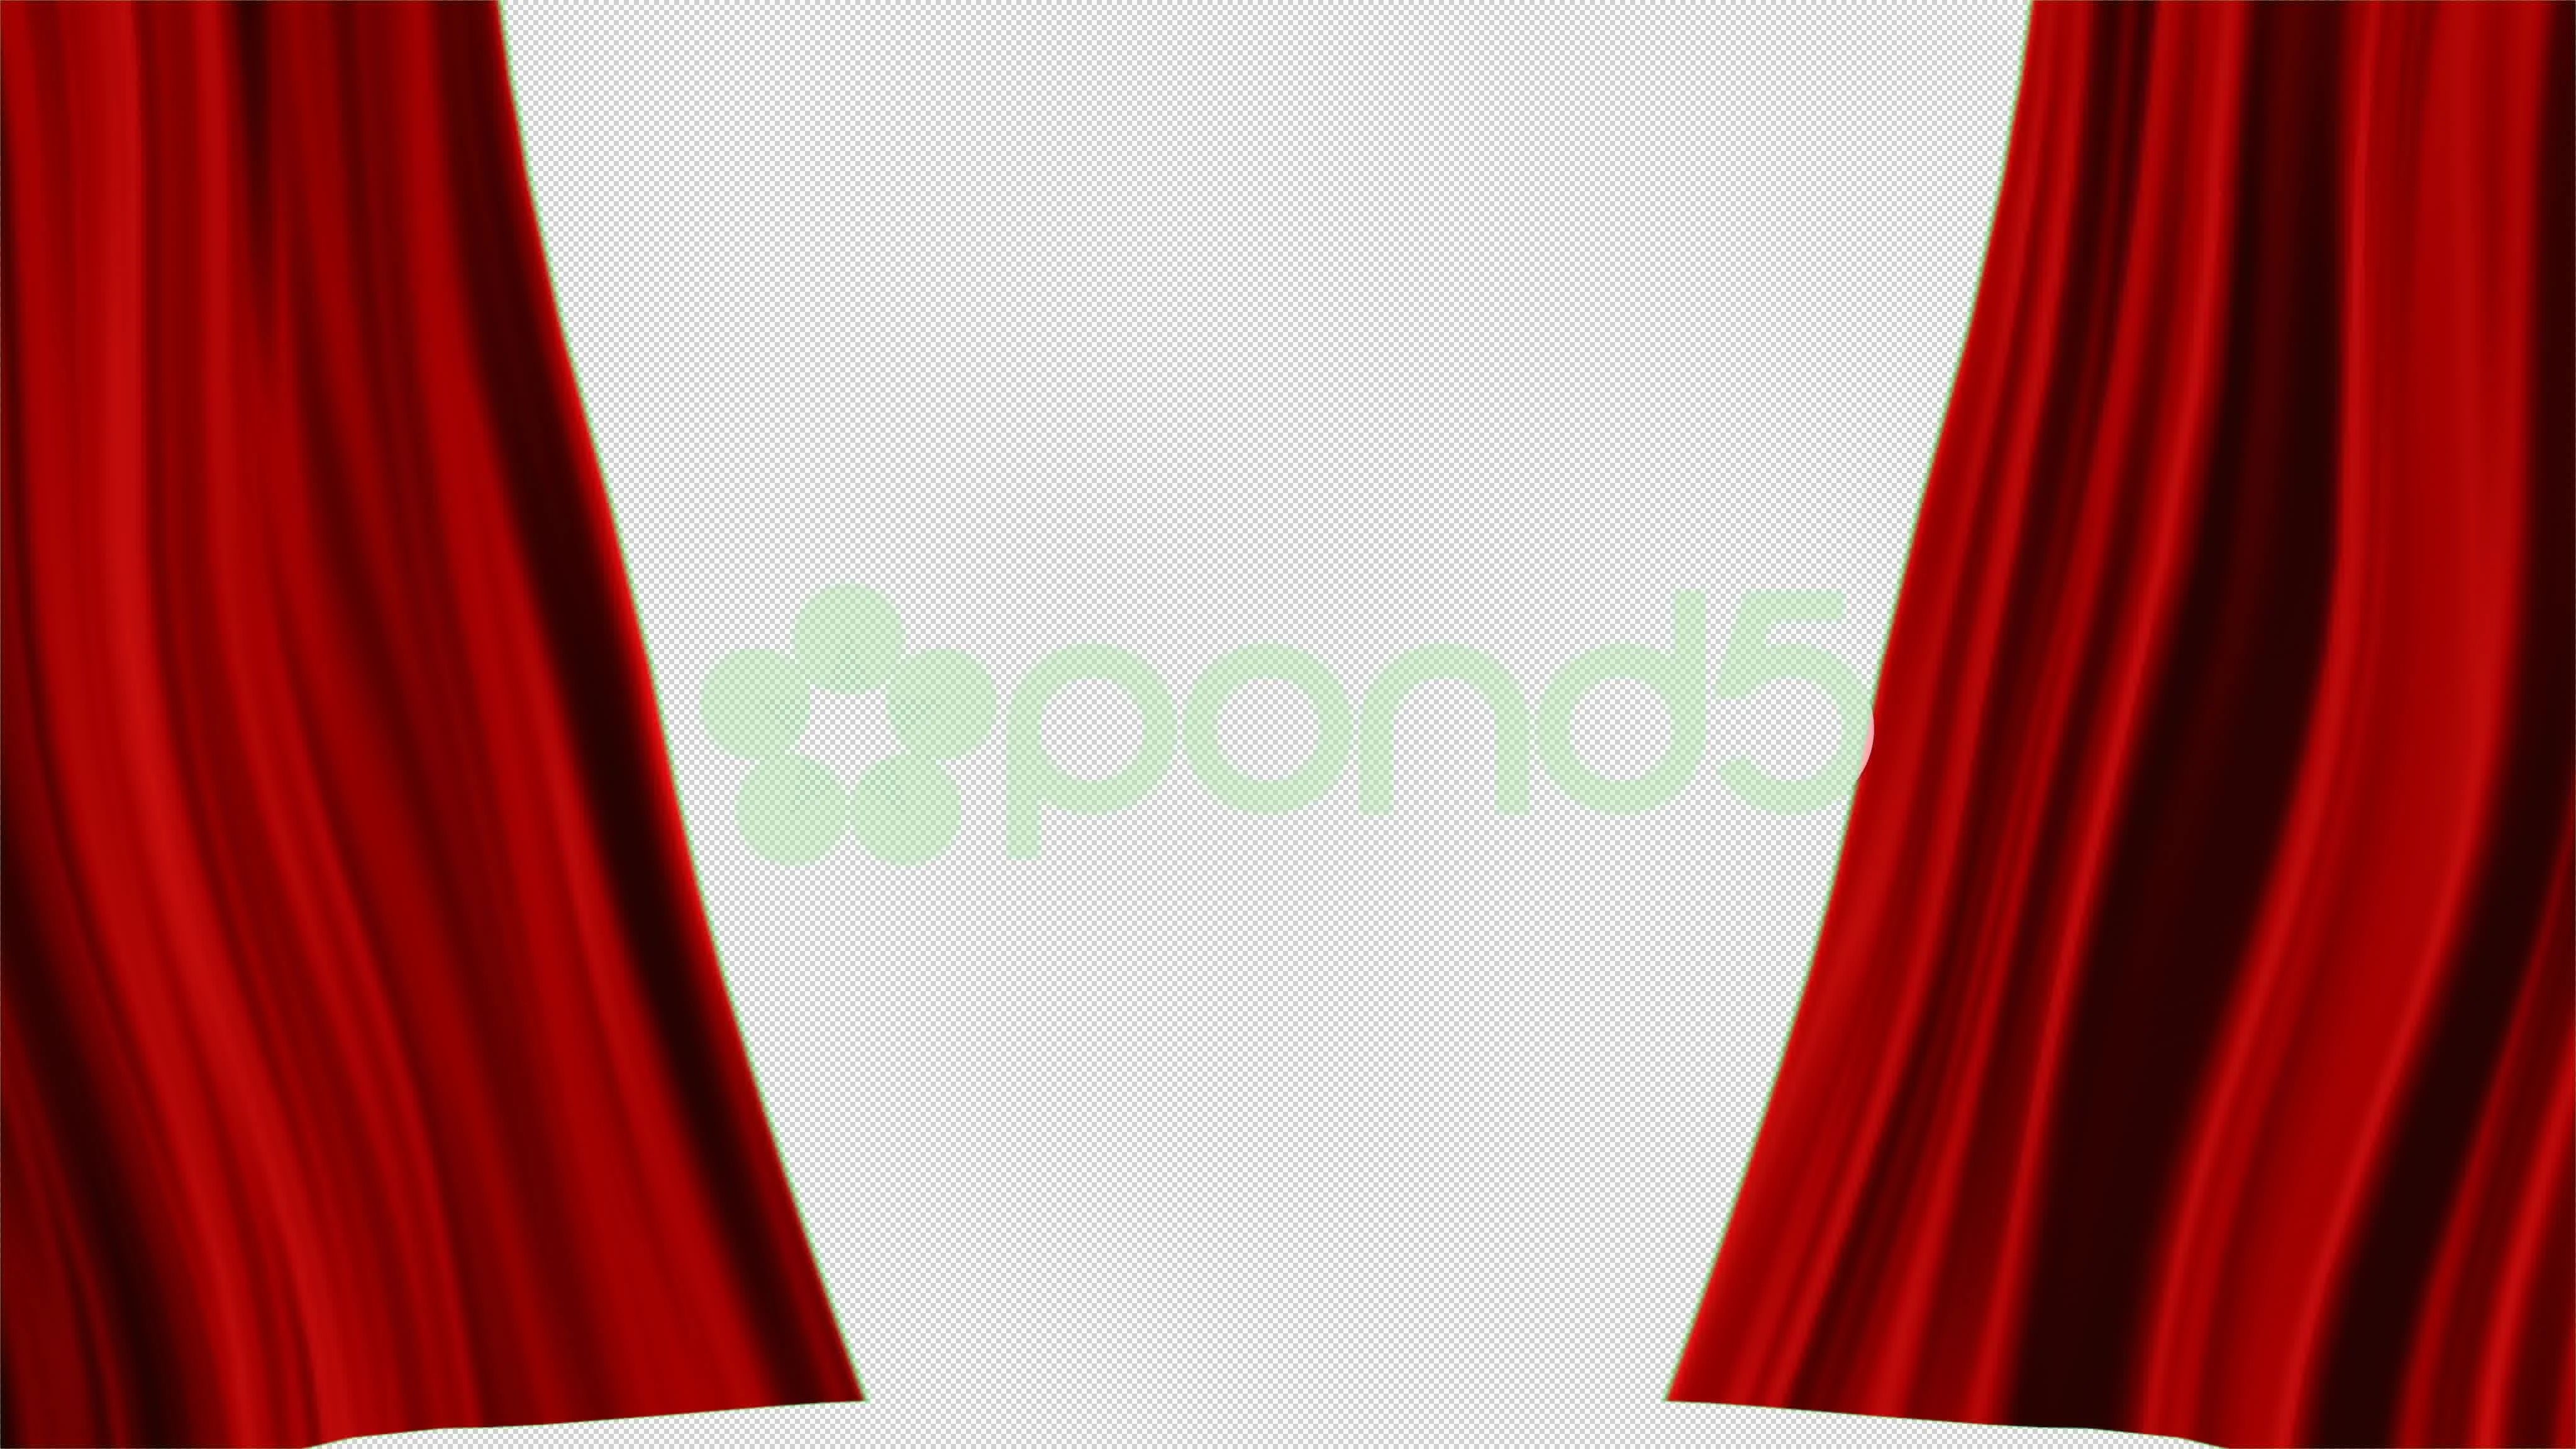 Stage lights background related keywords amp suggestions stage lights - Download Red Curtains Open Alpha Channel Transparent Background Clip Empty Stage Curtains With Lights